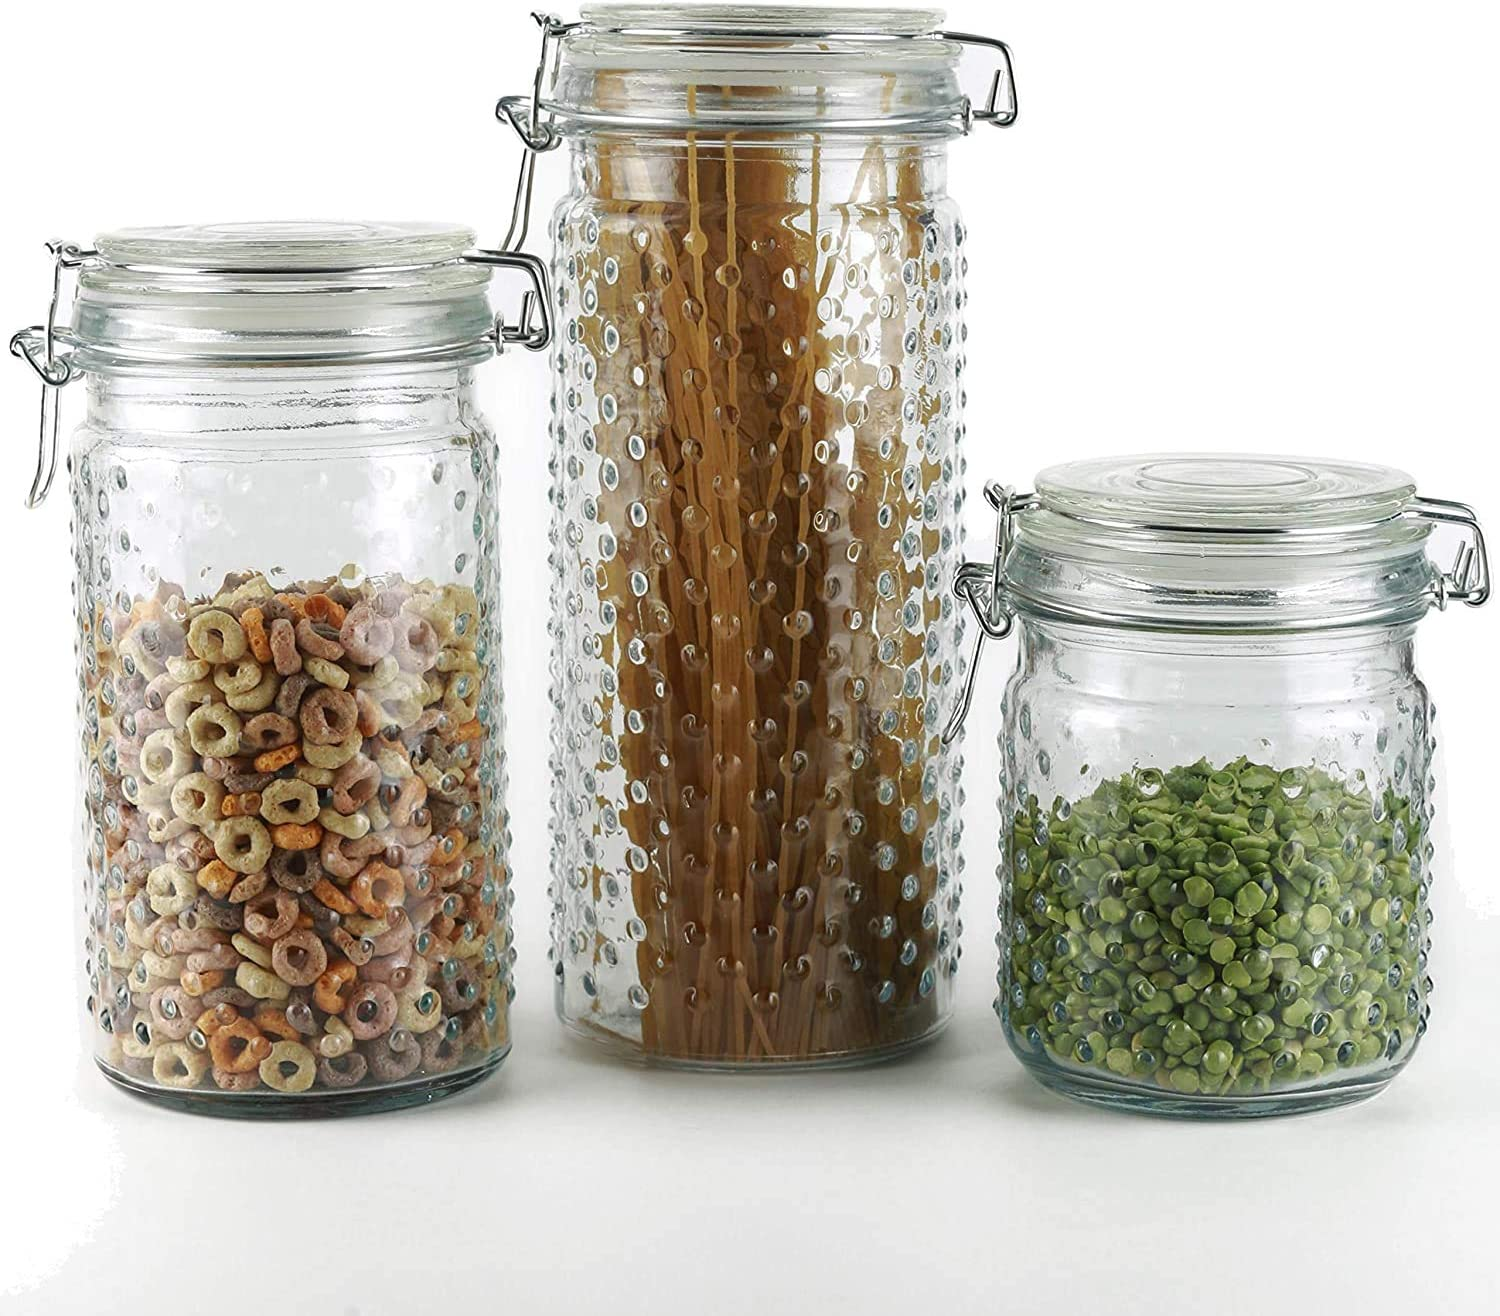 Glass Canister and Canning Jars w/Airtight Bail & Trigger Silicone Seal -Clear Glass Hinged Lid -Set Of 3- For Kitchen Canning Cereal, Pasta, Sugar, Beans, Nuts 0.6L-20 oz,1.1L-37 oz,1.3L - 44 oz.